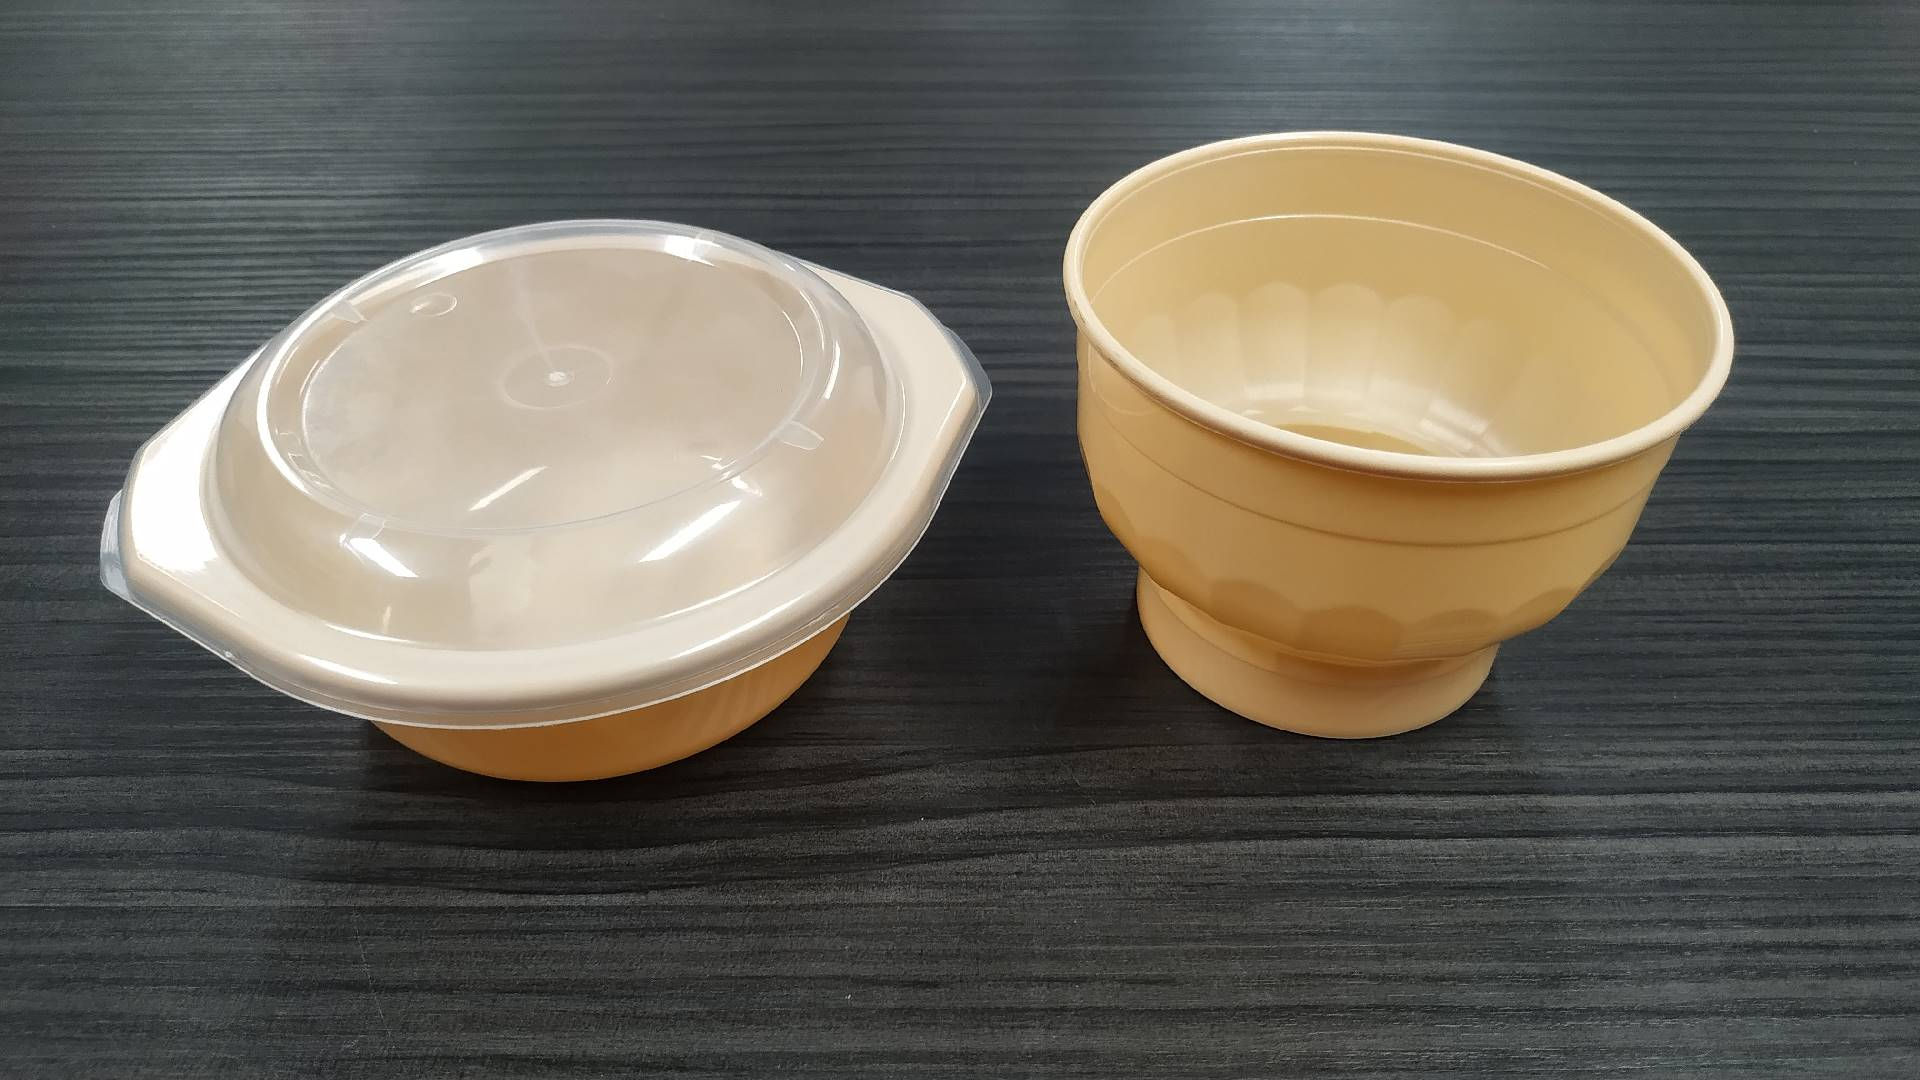 2 and 4 cavities molds BOWLS and LID